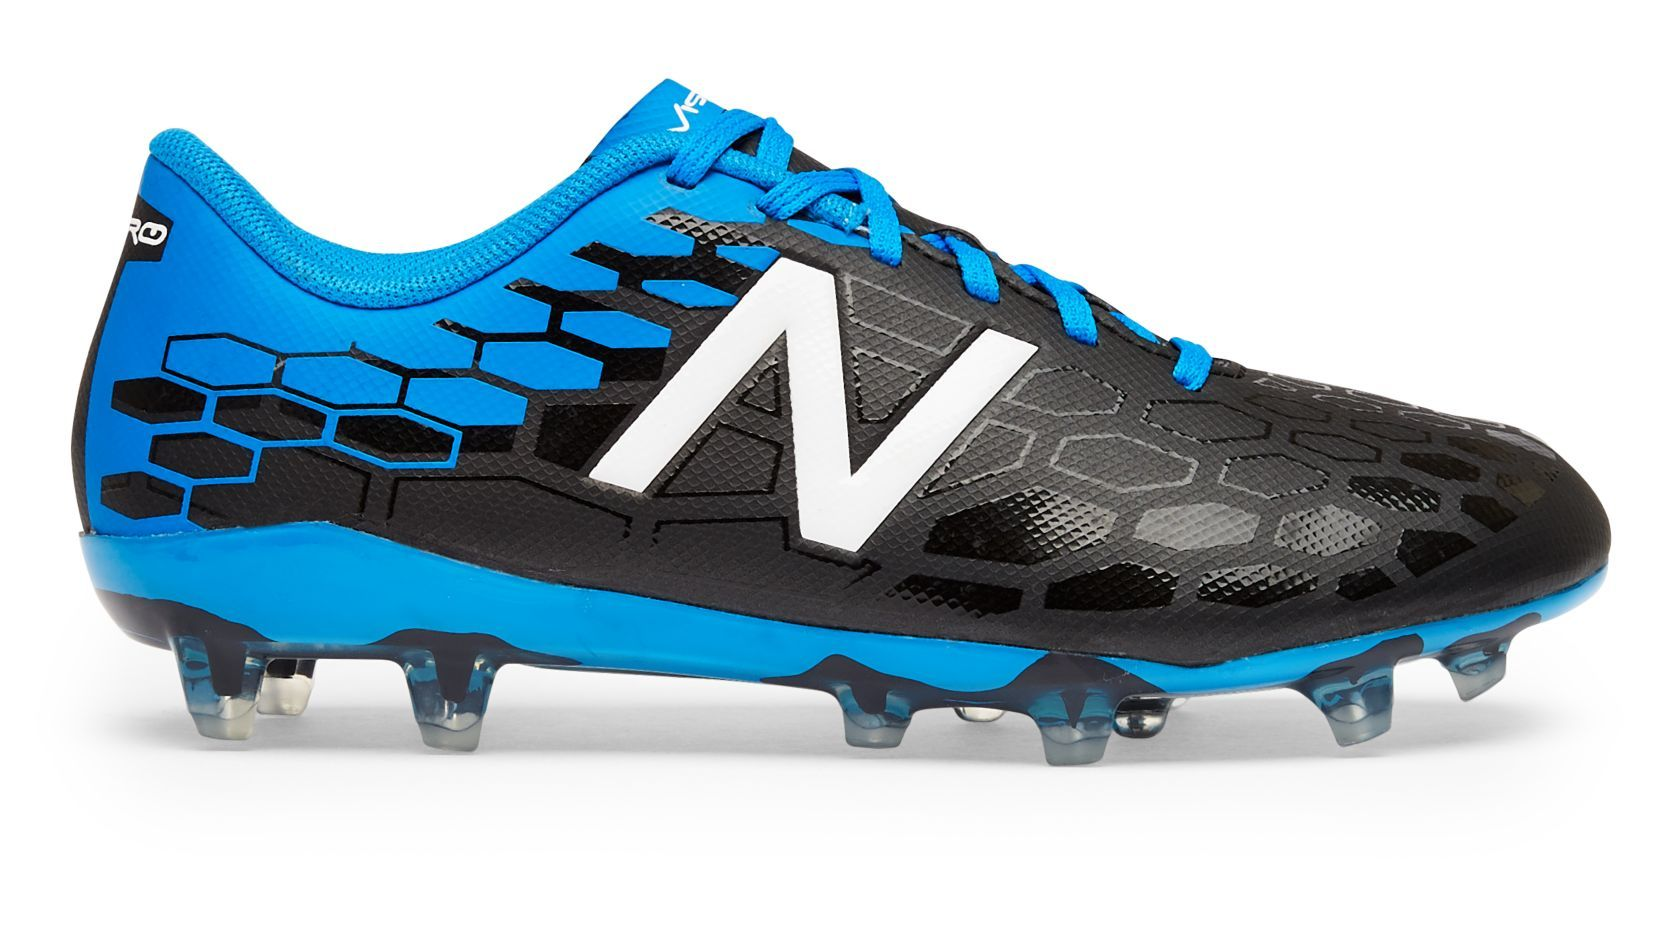 16431355e9b8c NB Junior Visaro 2.0 Control FG, Black with Bolt & Energy Red ...